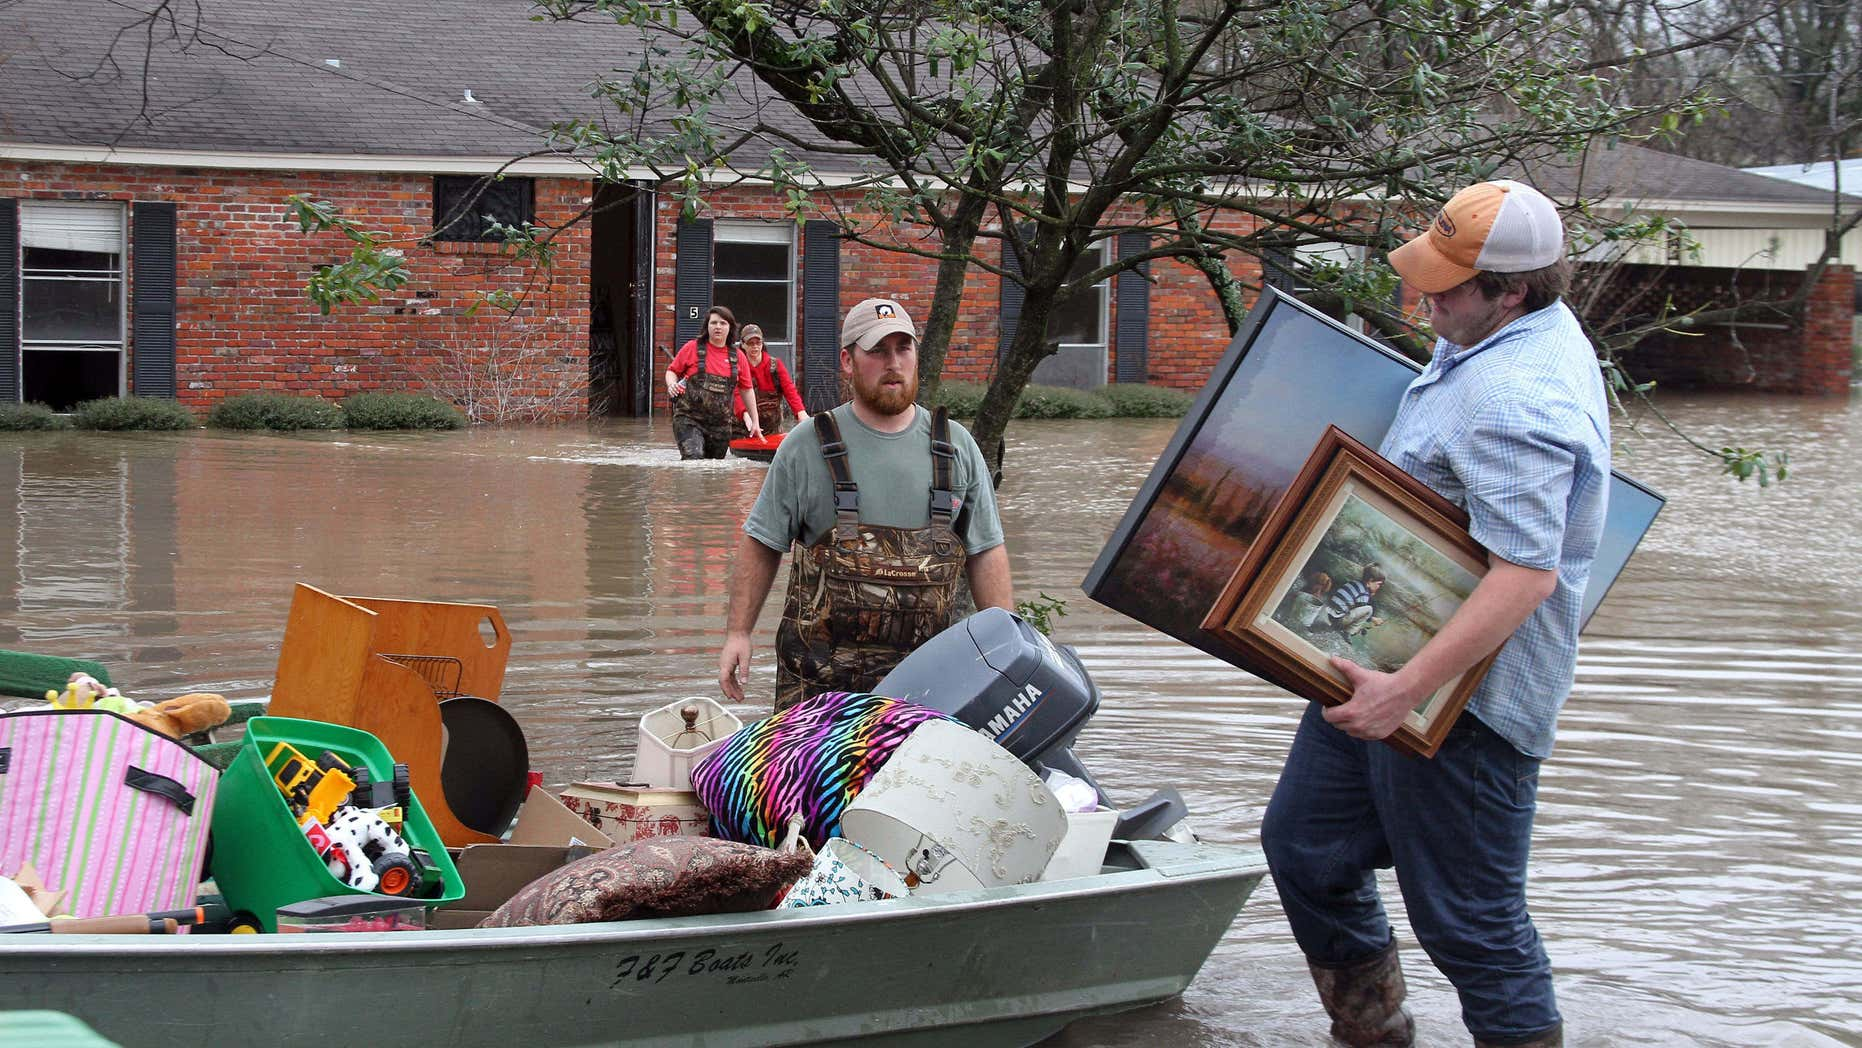 Volunteers return to a flooded house in Clarksdale, Miss., Friday, March 11, 2016, to assist the owners retrieve personal items as flood waters continued to rise following another morning of rain.